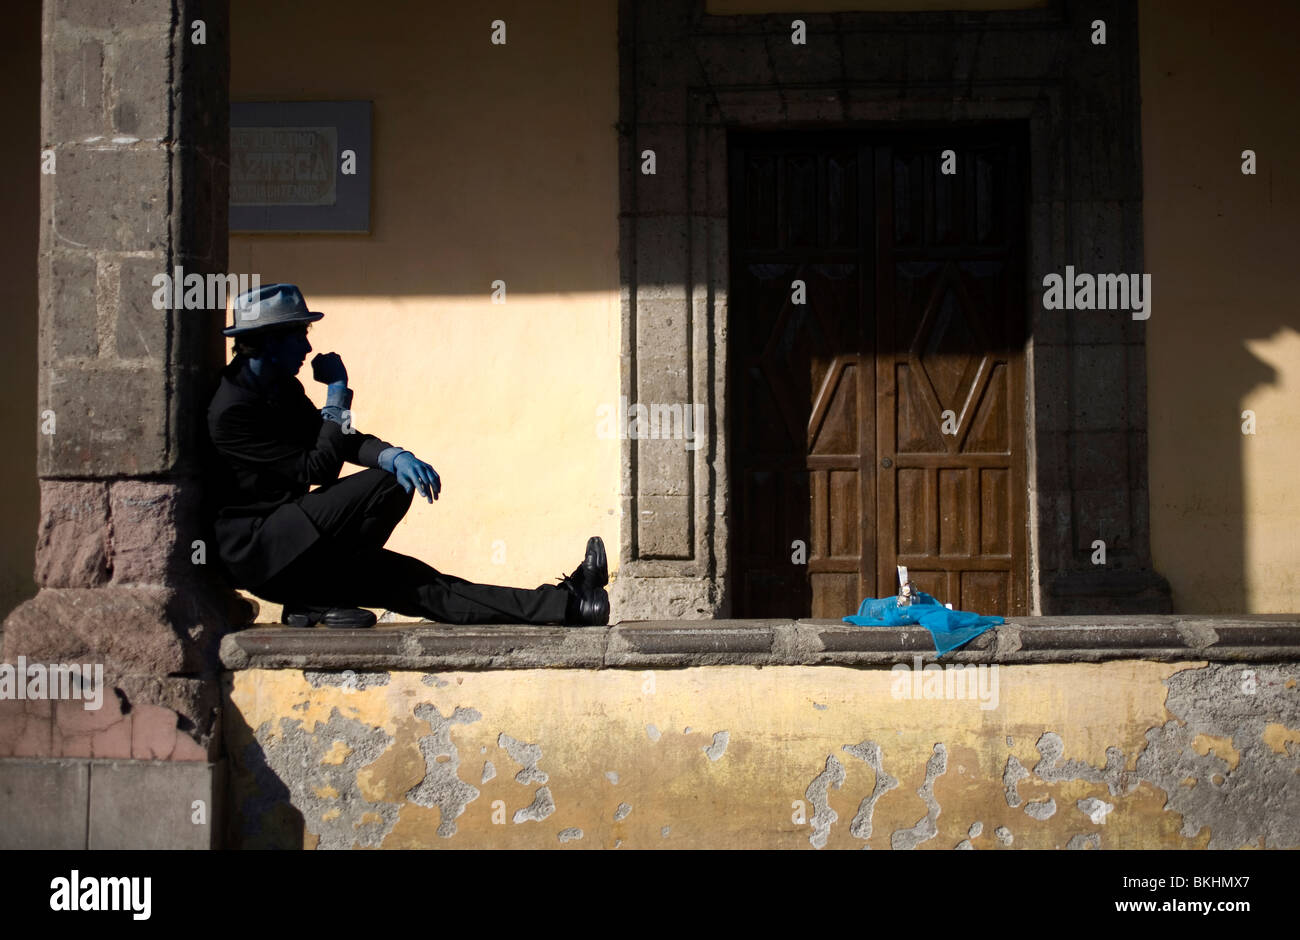 An street artist perfoms in the main square of the colonial town of Coyoacan, Mexico City, Feb. 24, 2008. - Stock Image